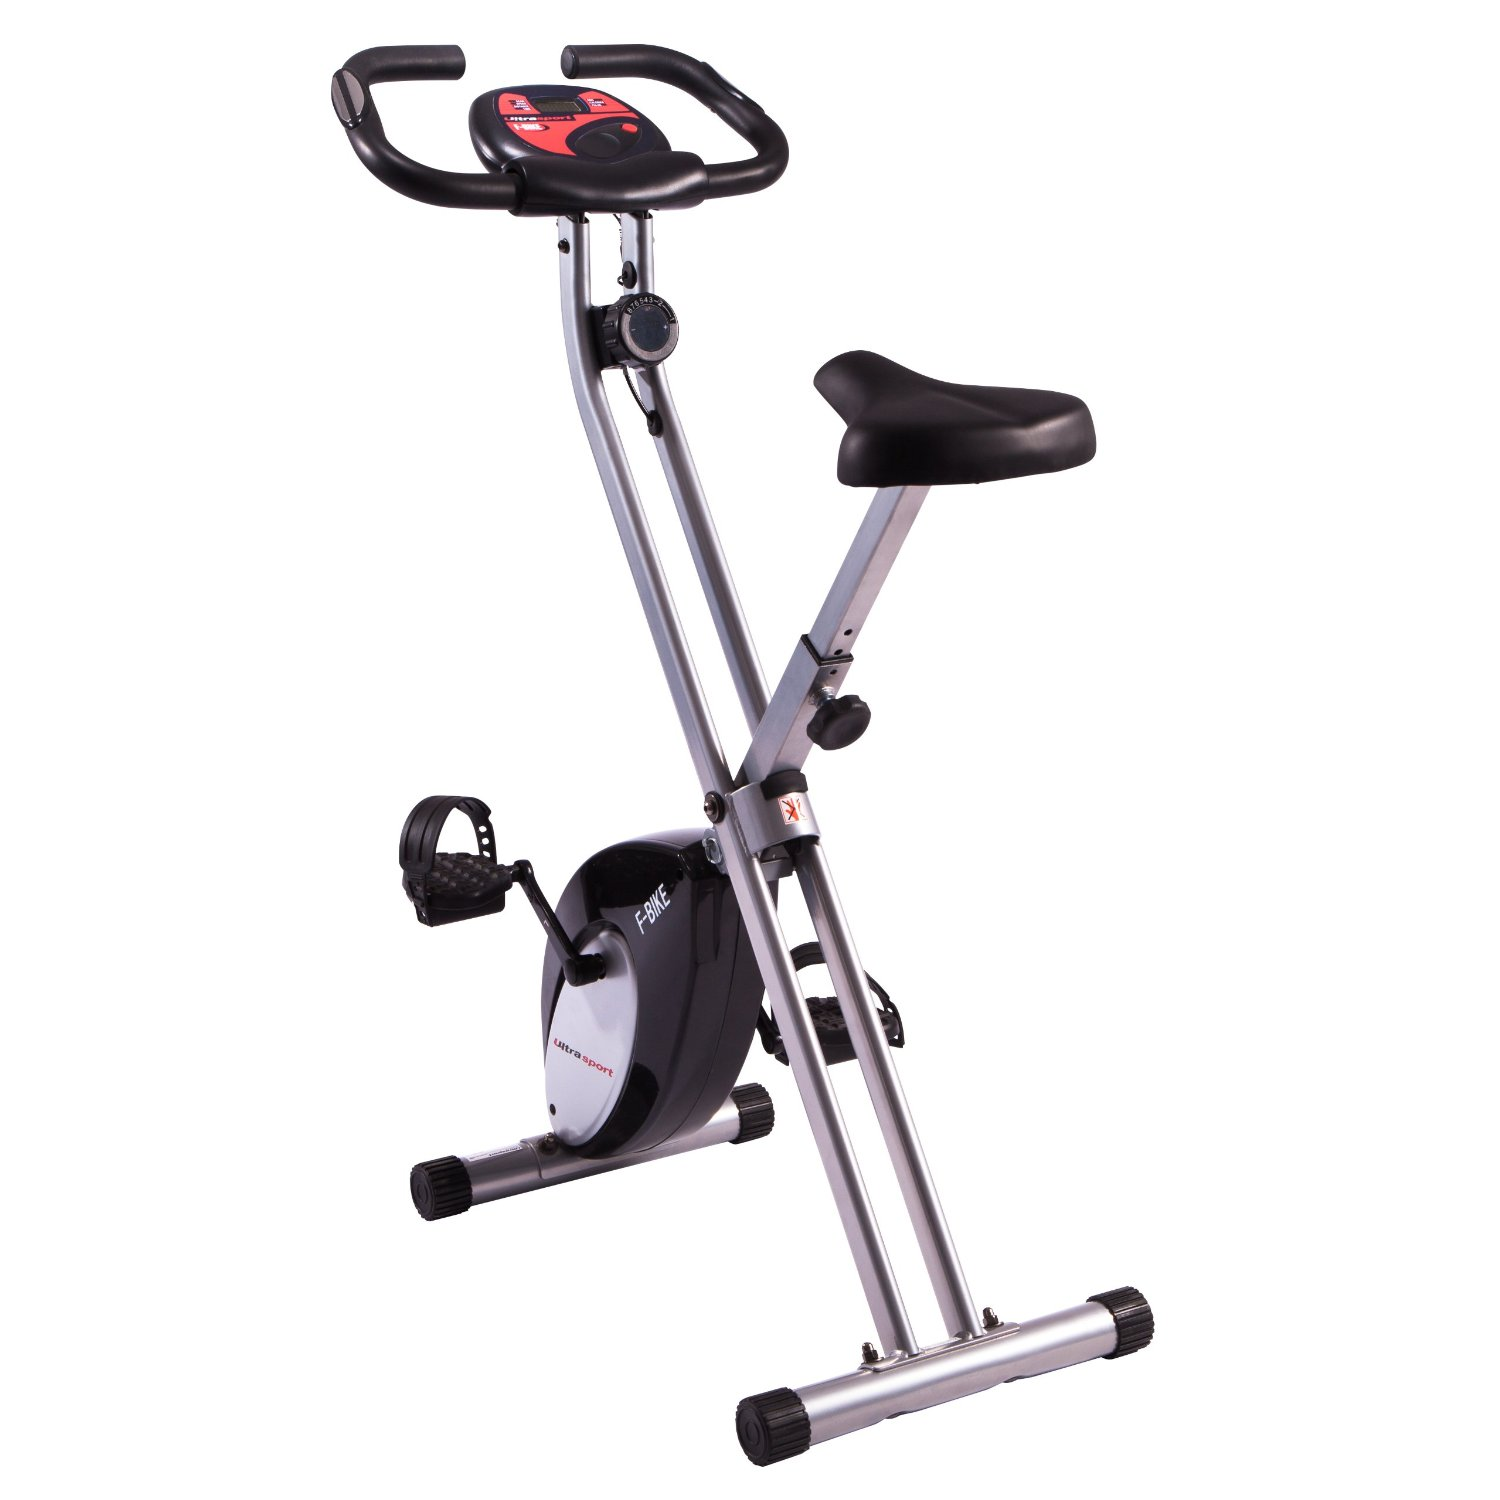 Ultrasport Exercise Bike F-Bike Review